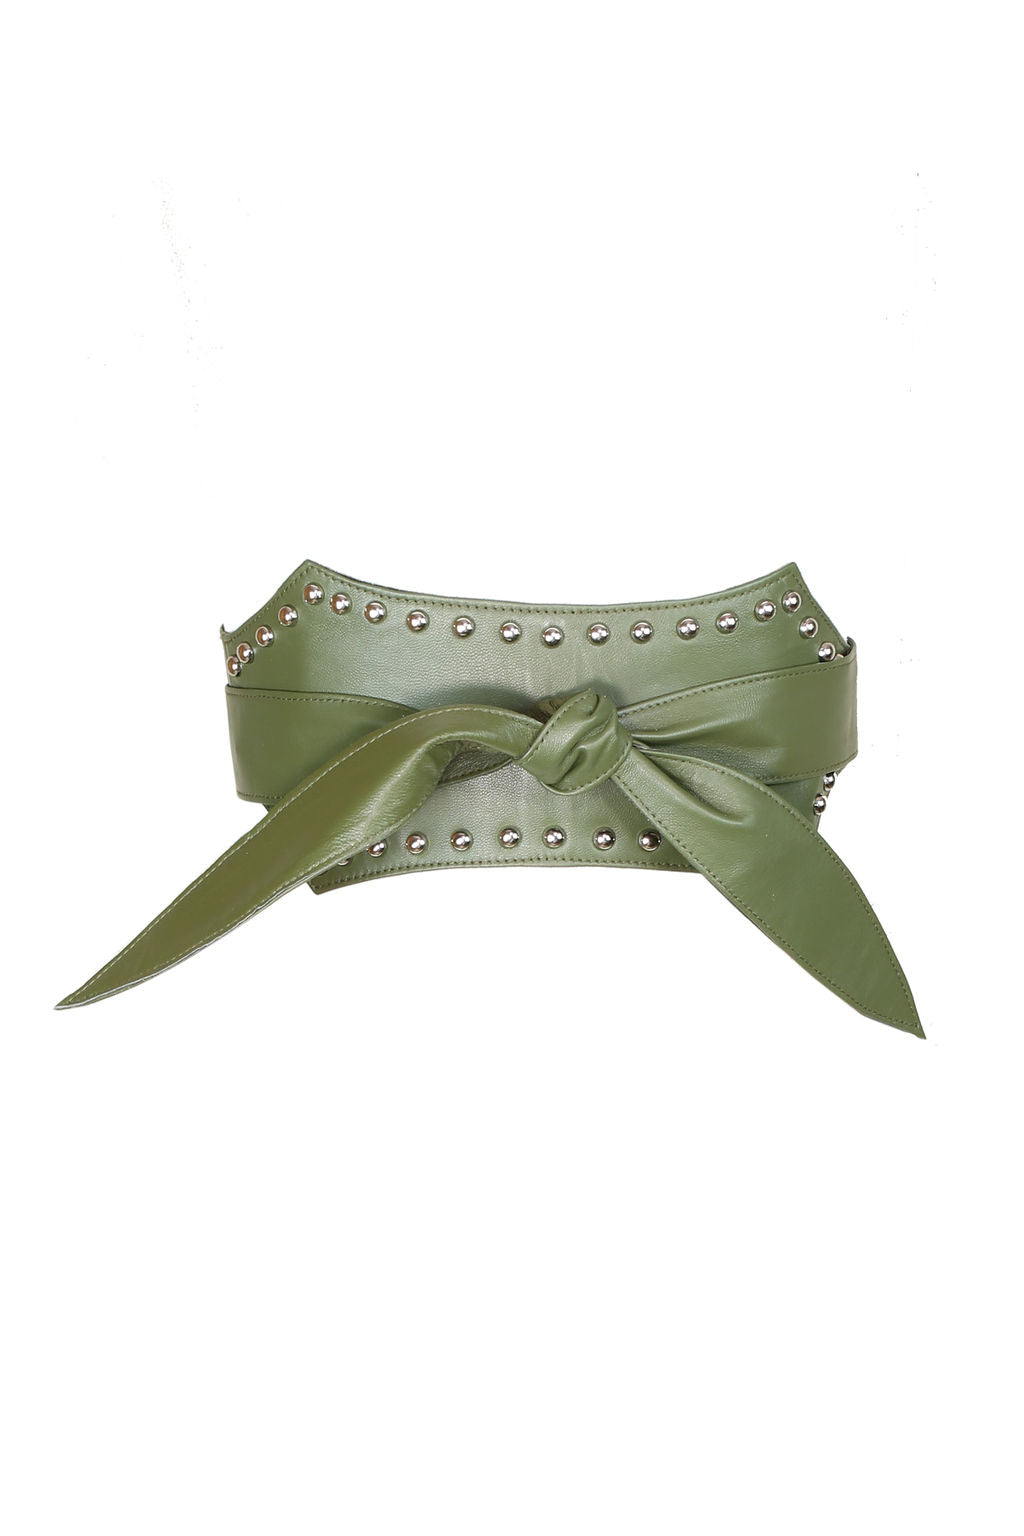 GEORGETTE SIGNATURE BELT